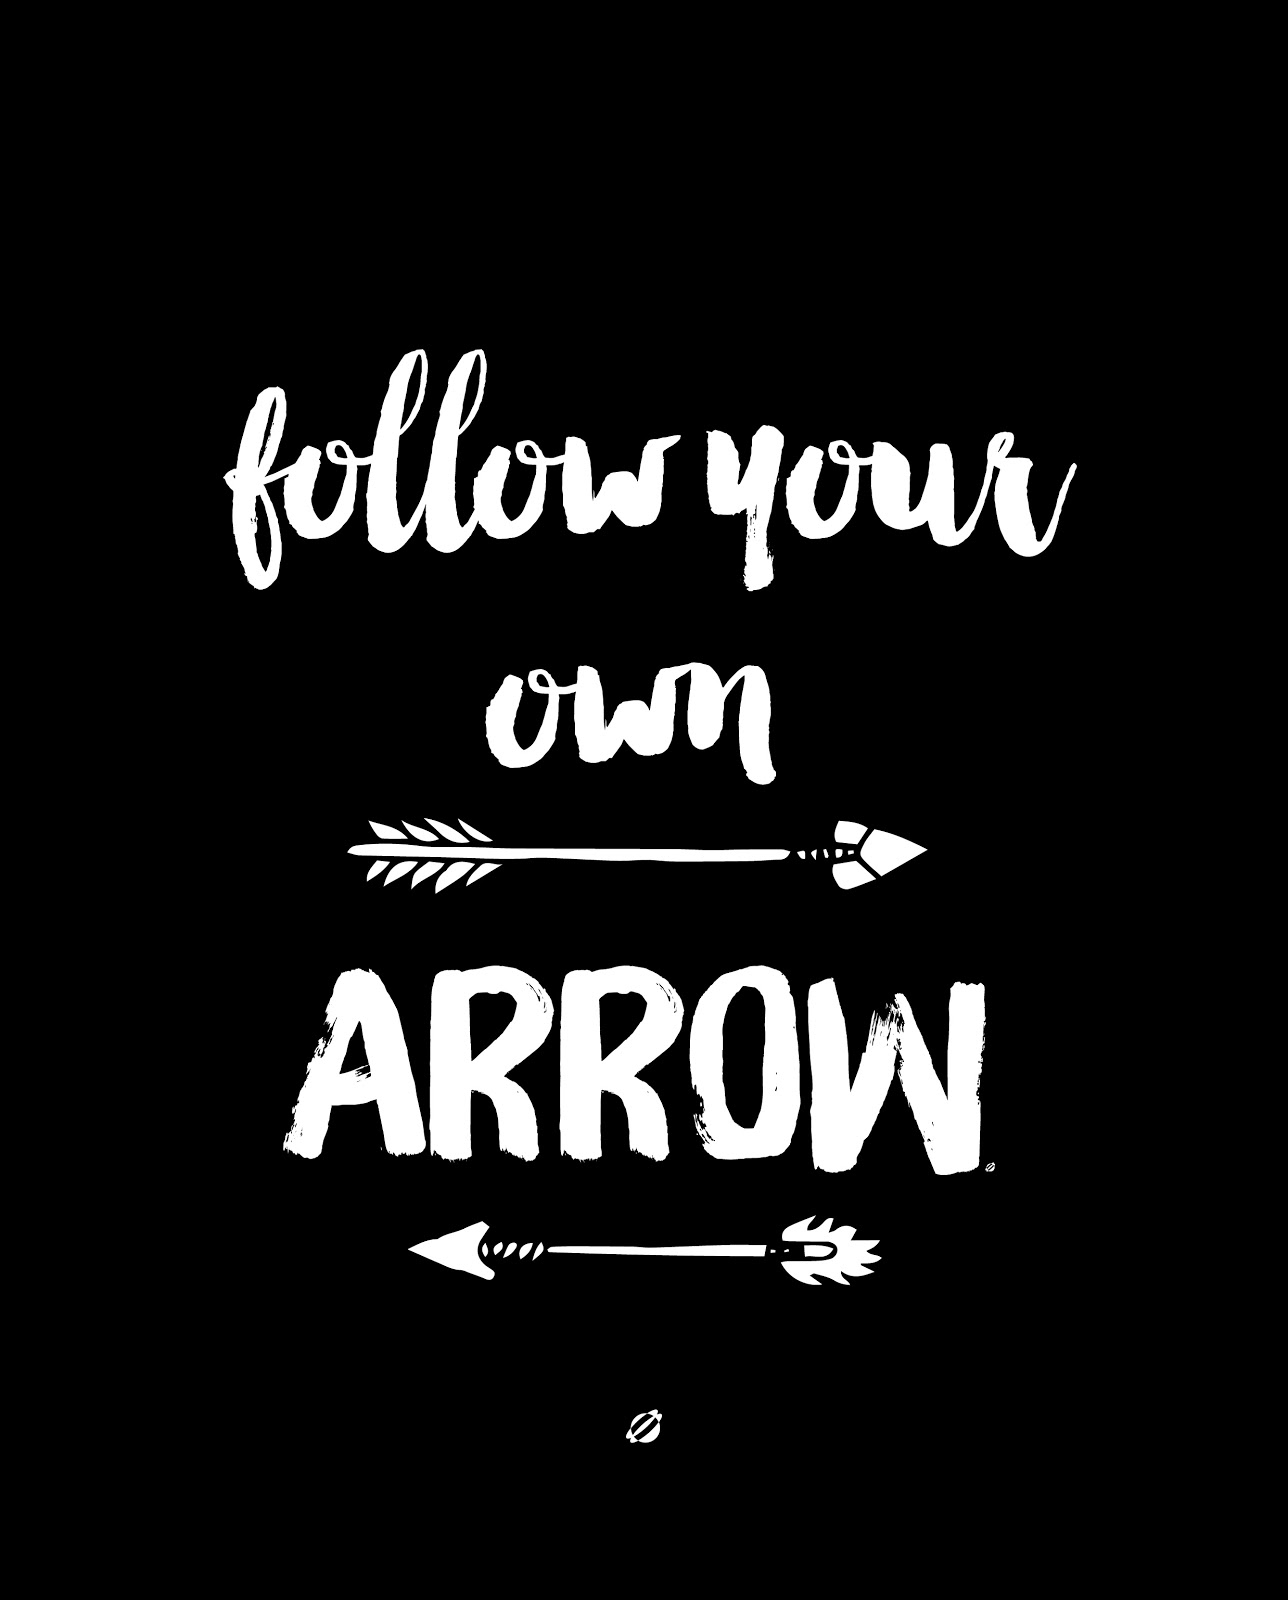 LostBumblebee ©2015 Follow Your Own ARROW : Free Printable : Personal Use Only